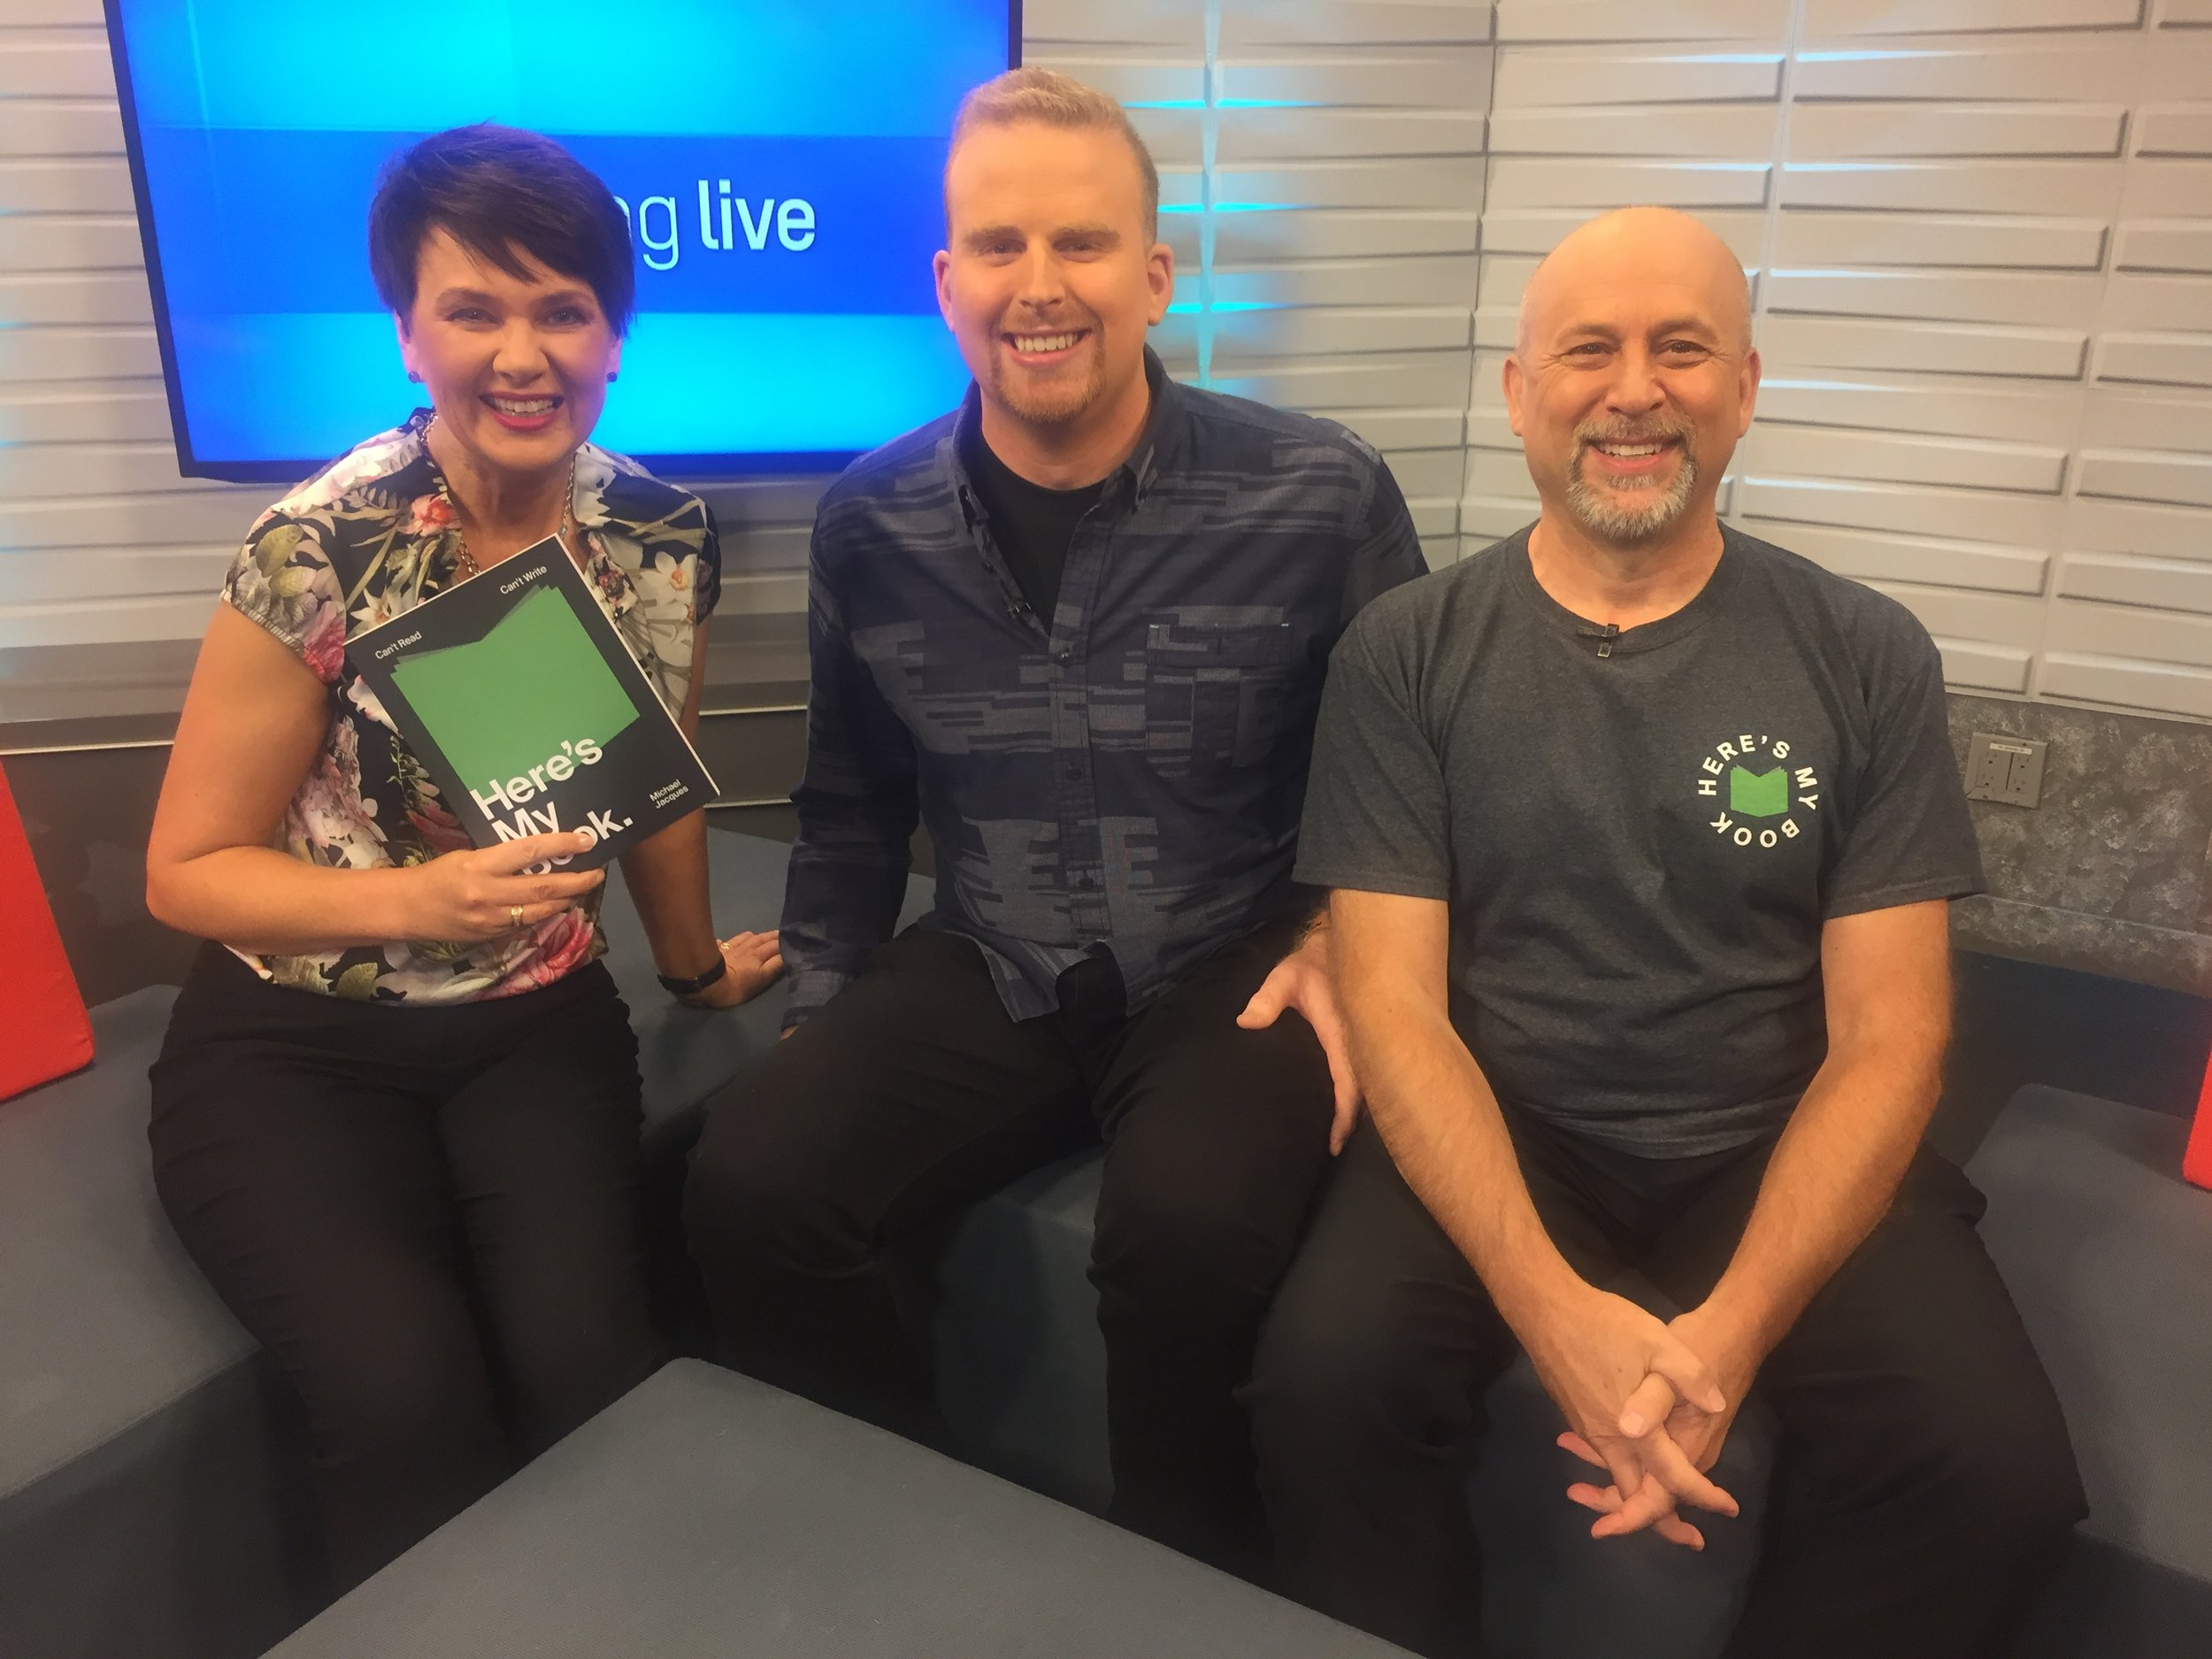 Day 3 – early morning on CHCH promoting the Sobeys Book Tour. Thanks Annette for having me again.